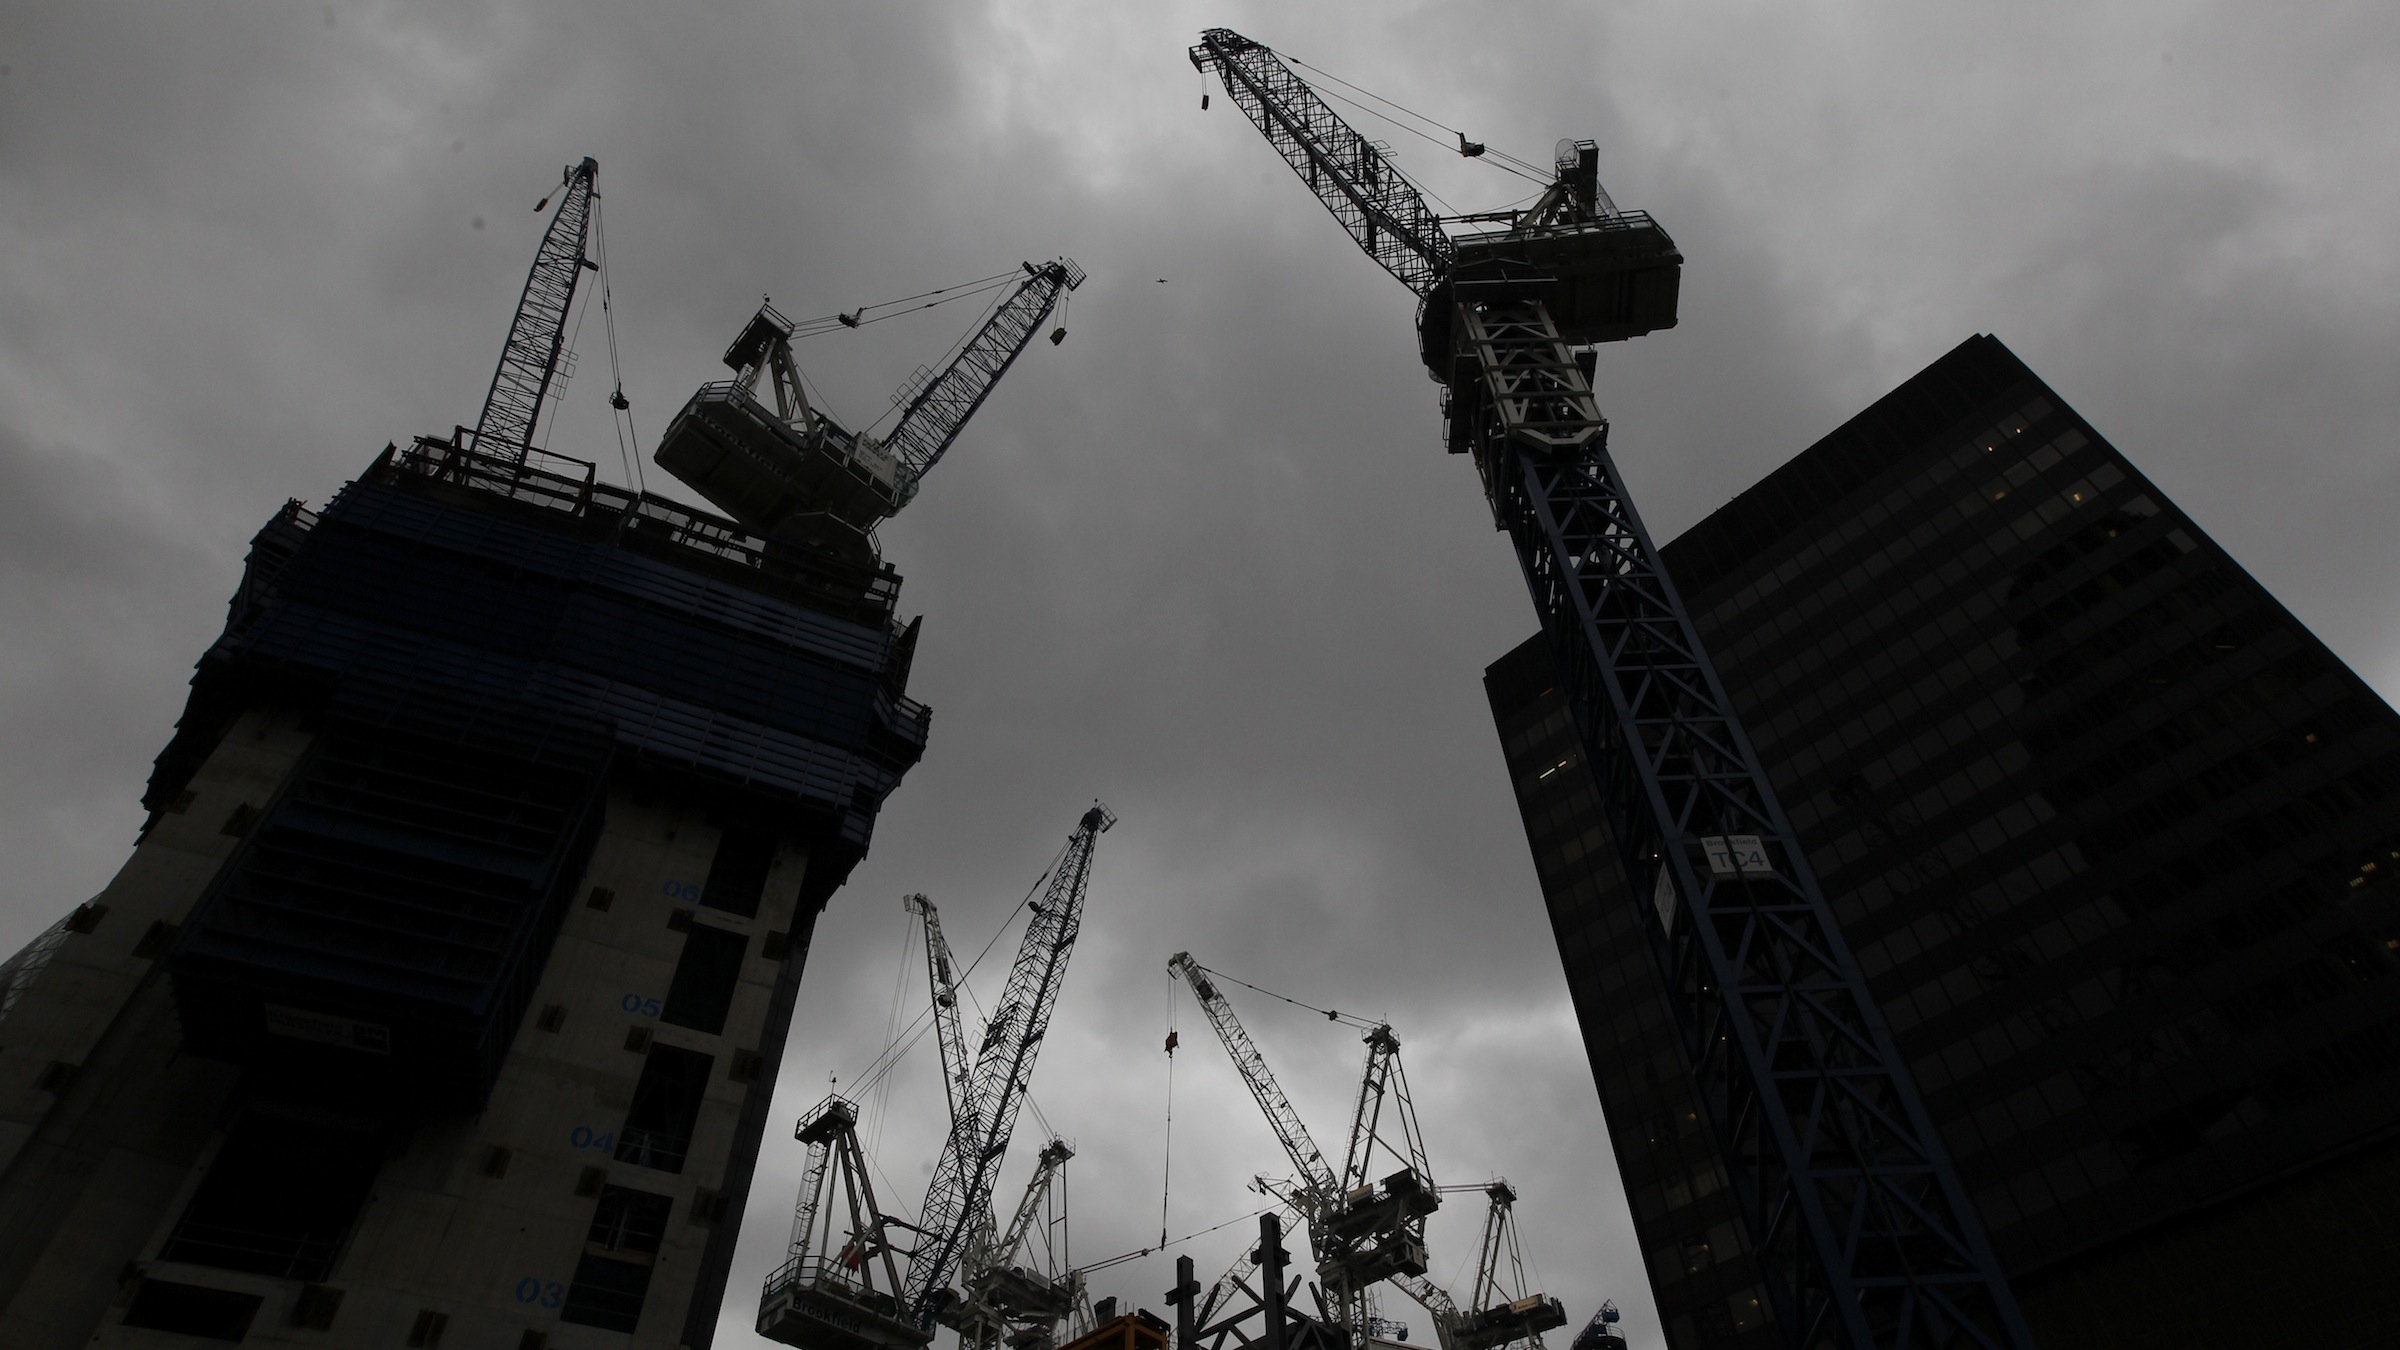 Construction in London's financial district